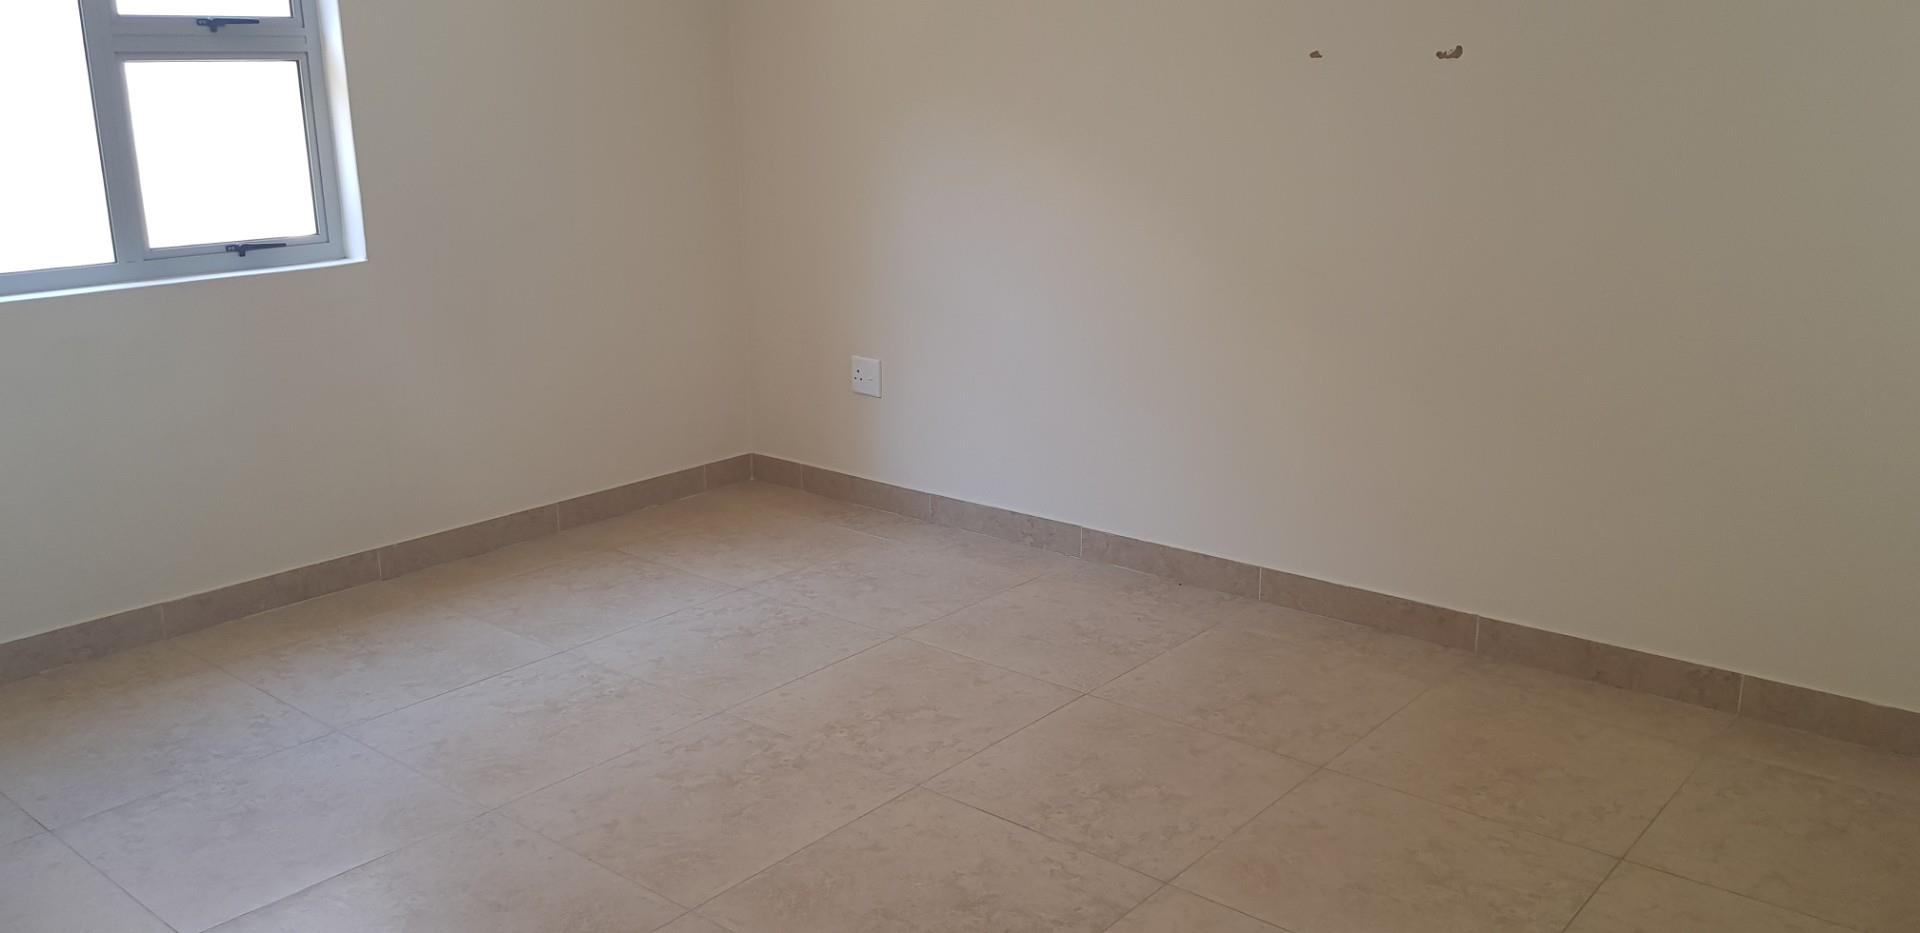 2 Bedroom House To Rent in Elisenheim